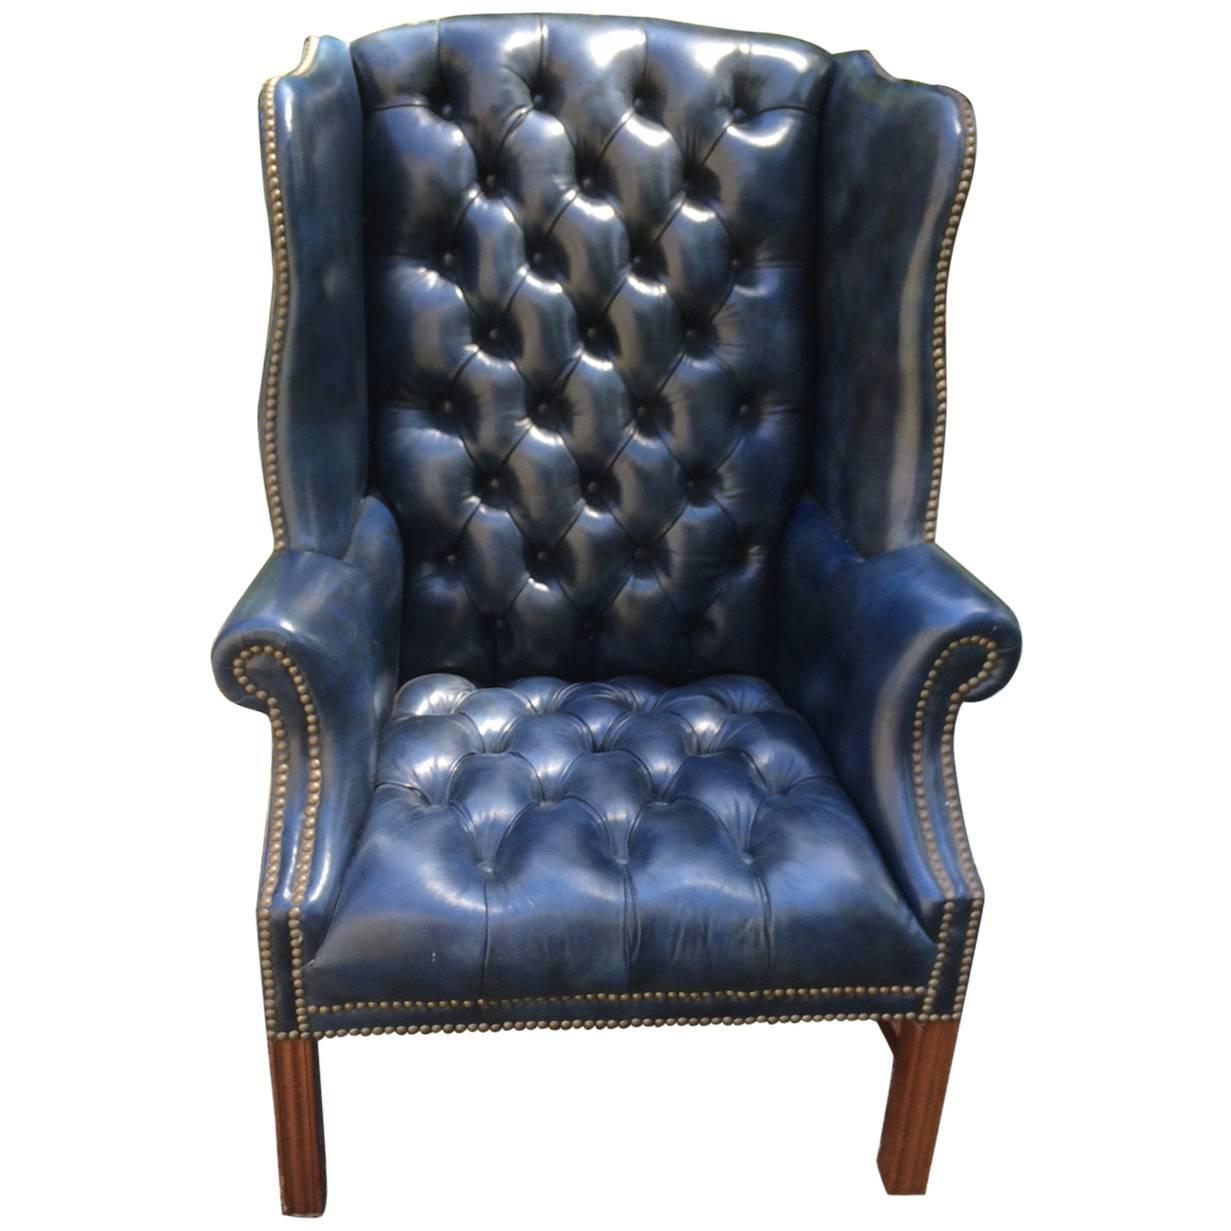 Fabulous Navy Blue Leather Tufted Wing Chair For Sale At